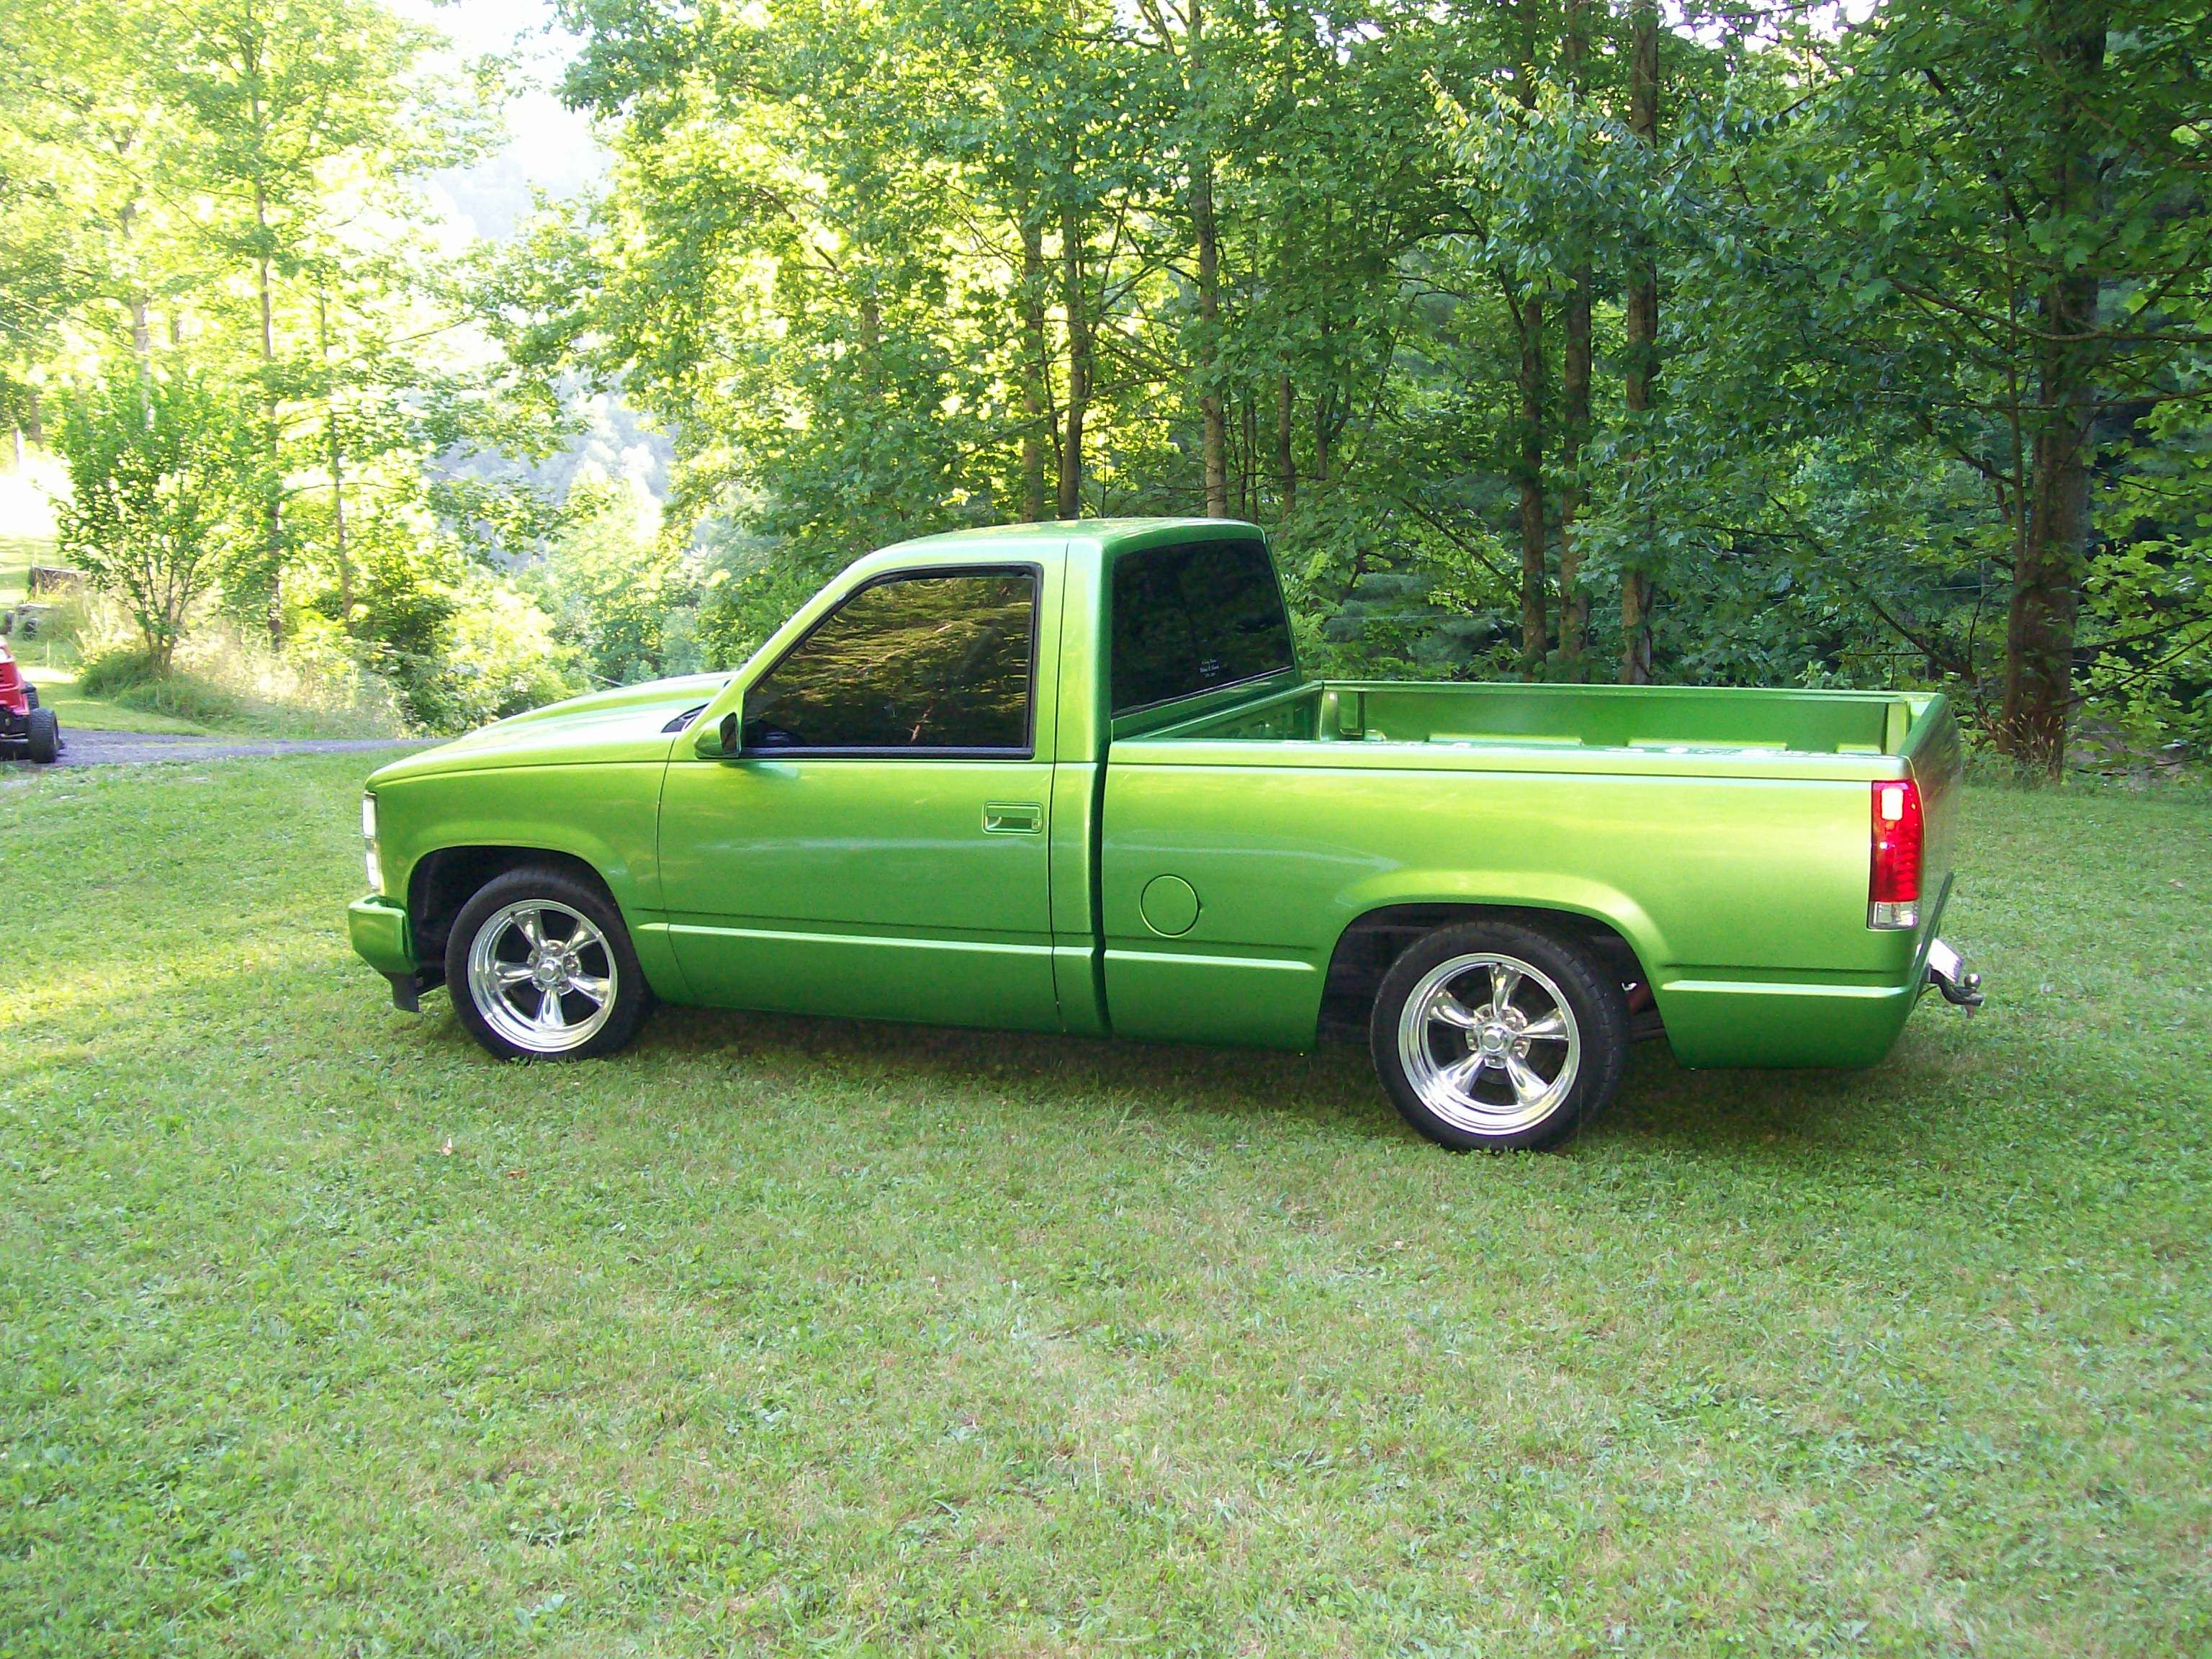 1989 Chevy Cheyenne C1500 Restoration Chevy Trucks Silverado Truck Custom Chevy Trucks